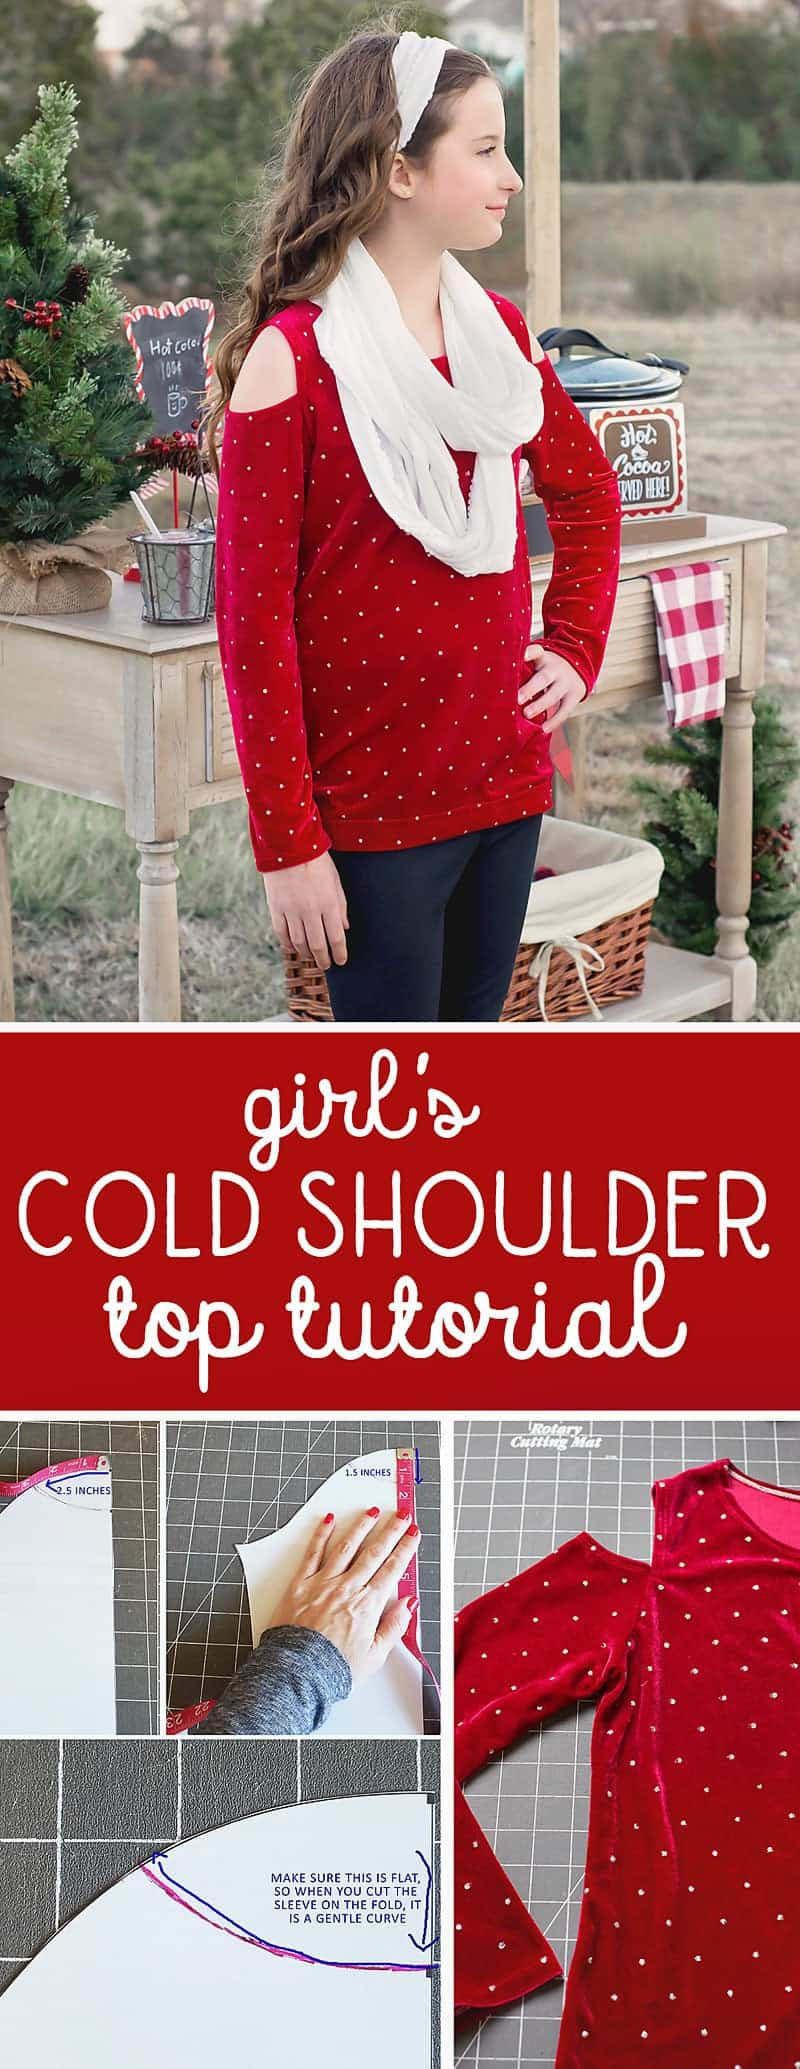 Cold Shoulder Top Tutorial: Learn how to sew a COLD SHOULDER top! Use my free t-shirt pattern or your own favorite knit top pattern! #sewing #freepattern #sewingwithknits #coldshouldertop